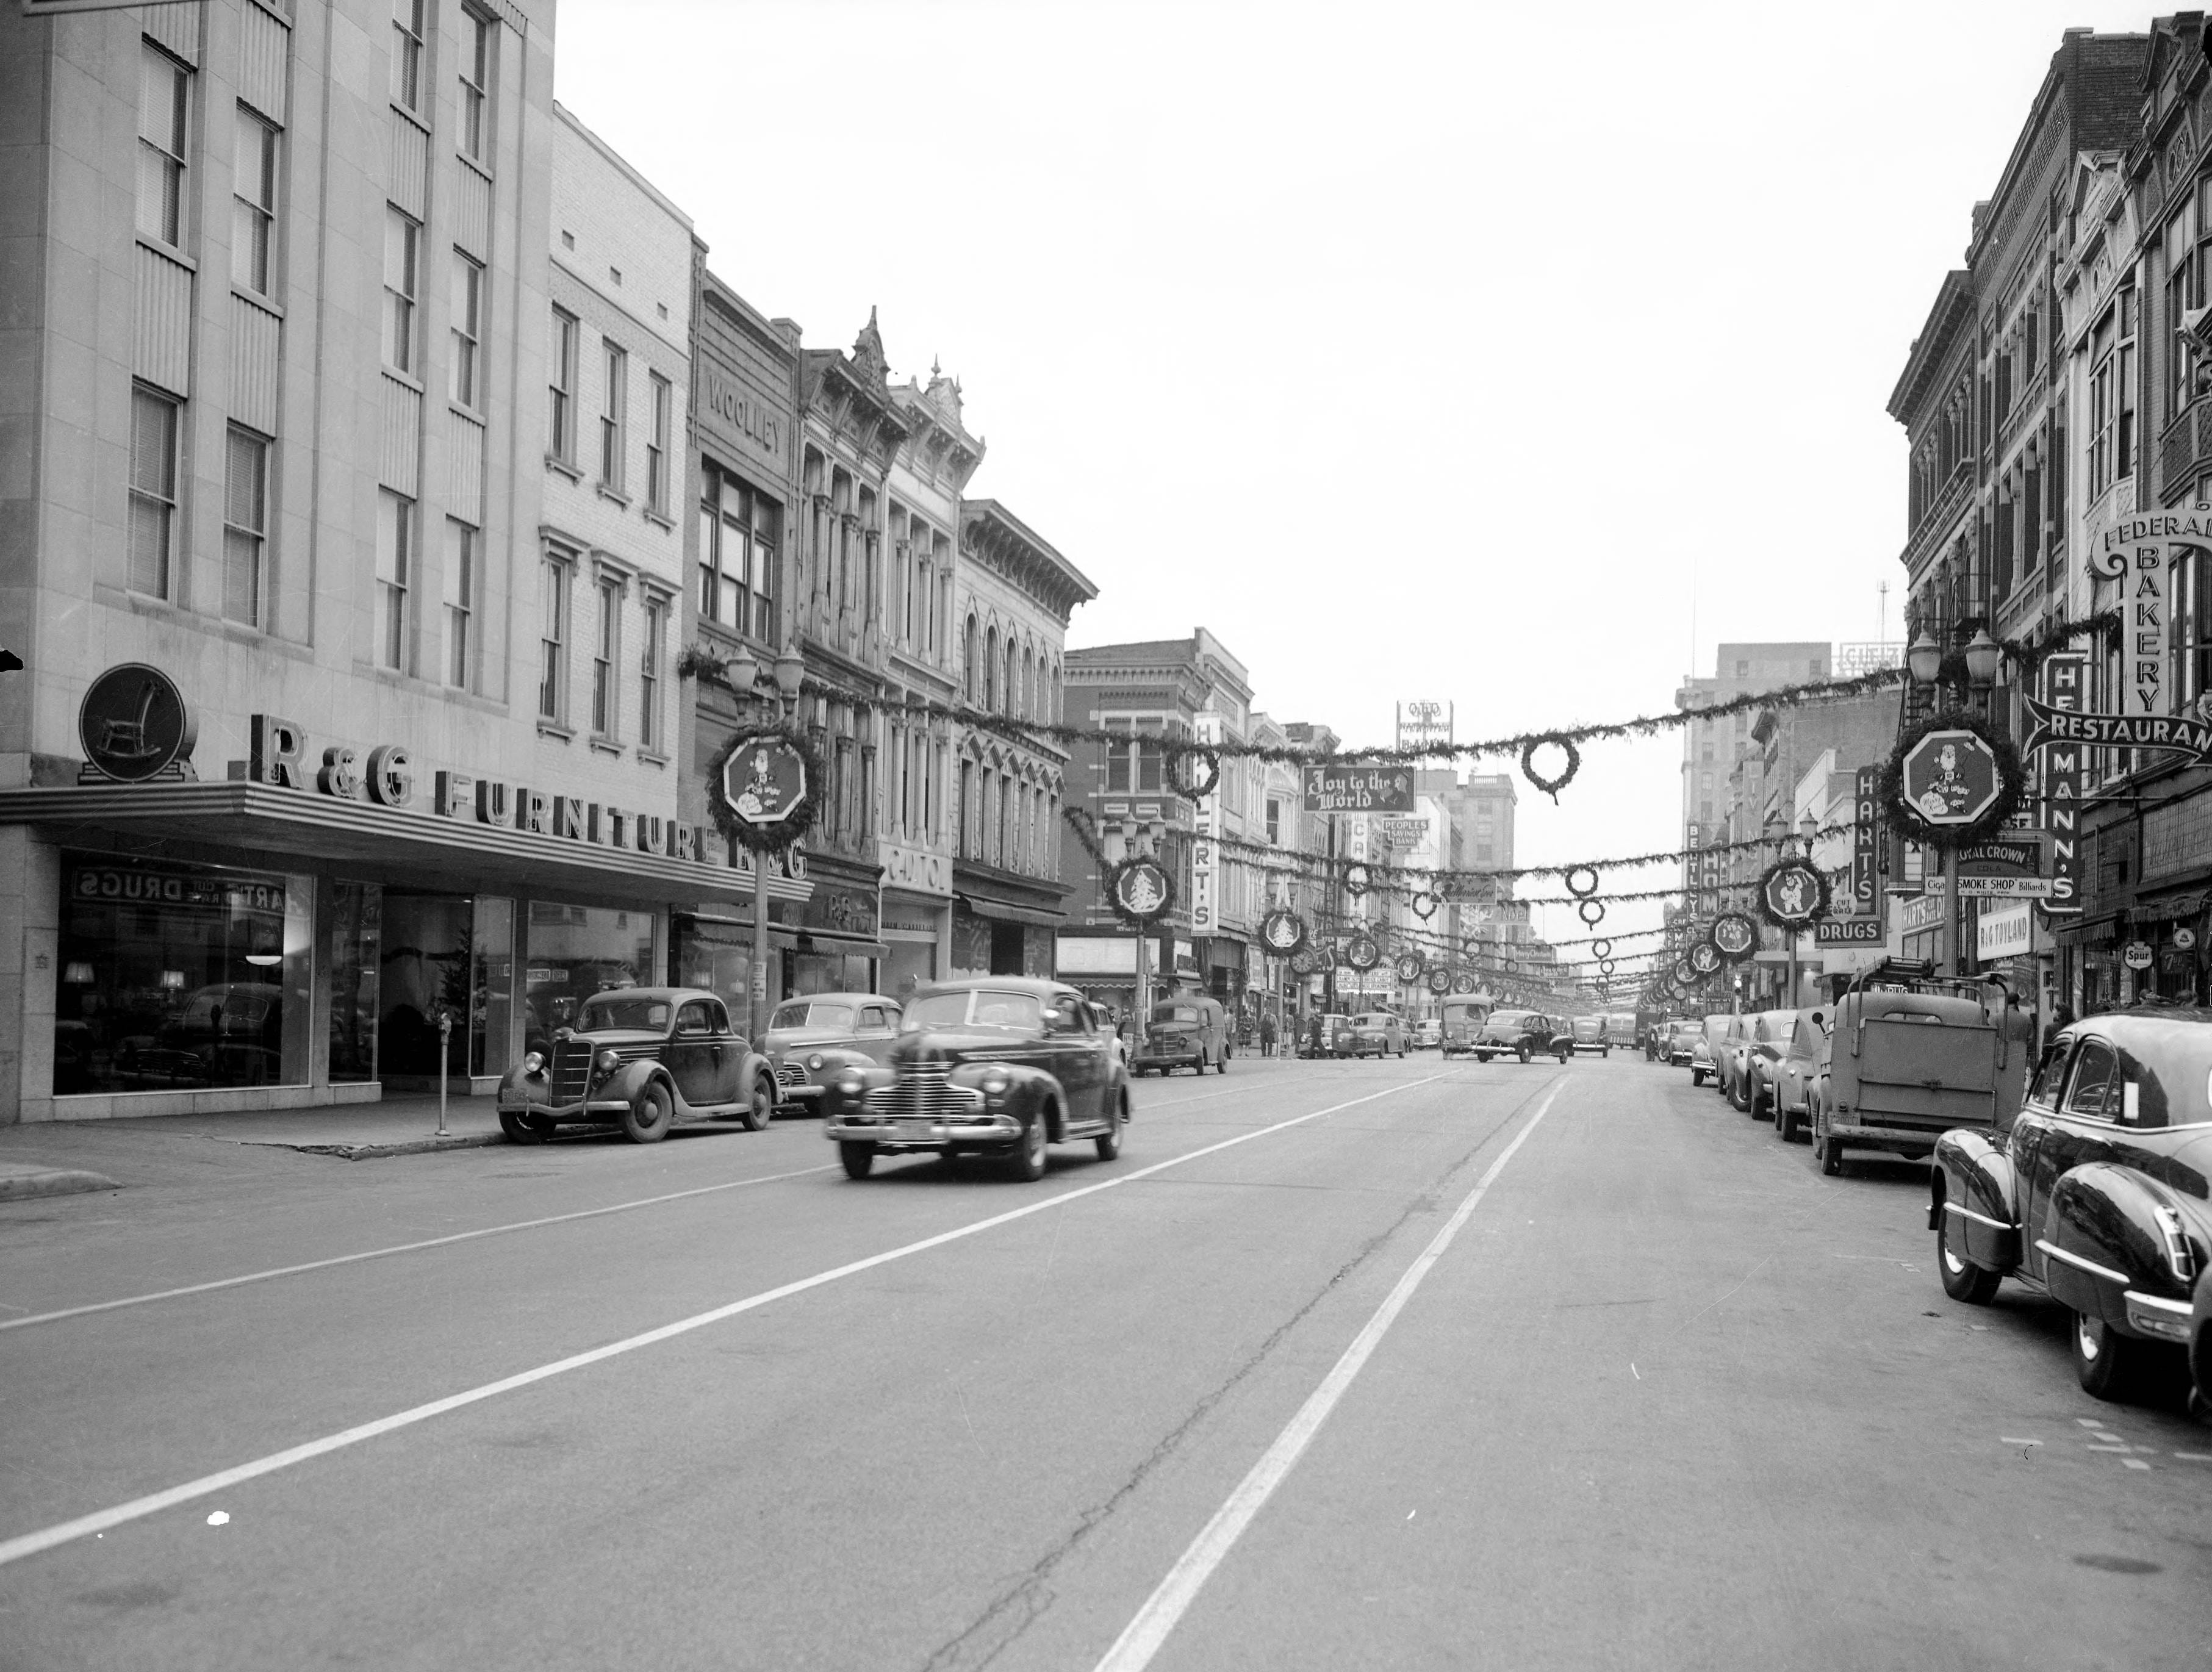 00-200 block of Main St., with Christmas decorations strung overhead, and many cars on street in 1939.